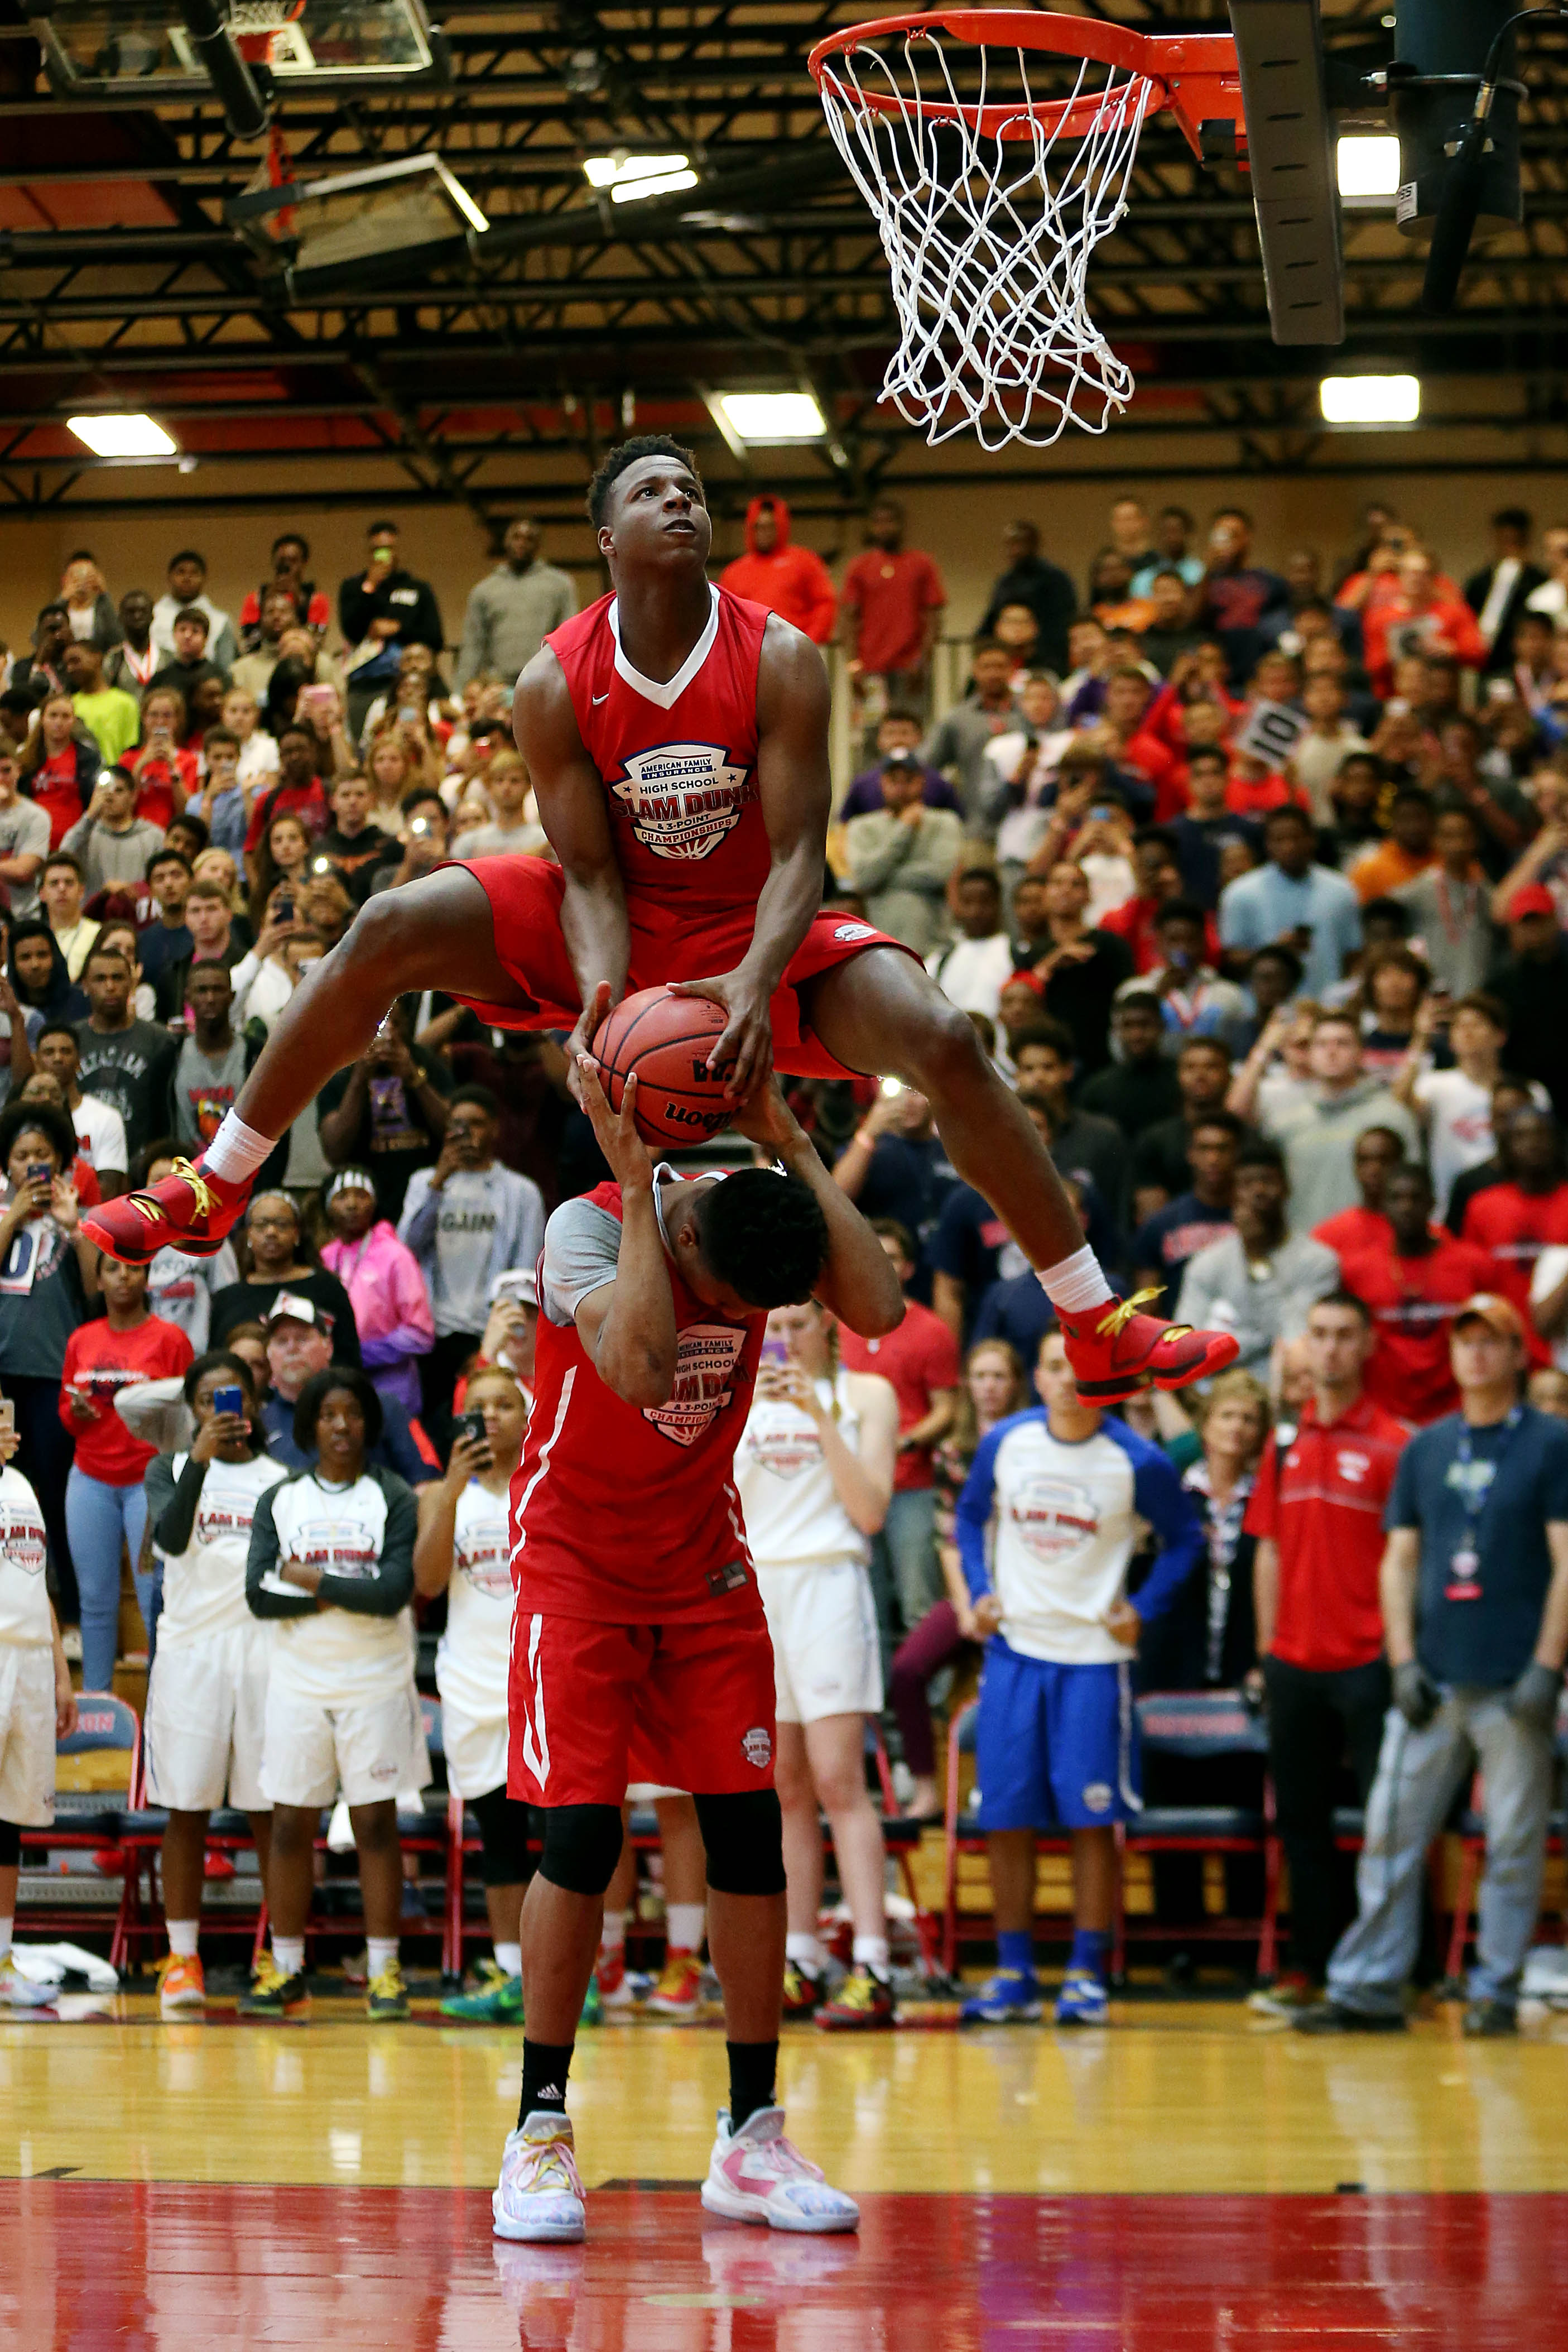 Mark Vital attempts a dunk with the help of another competitor (Photo: Peter Casey, USA TODAY Sports)